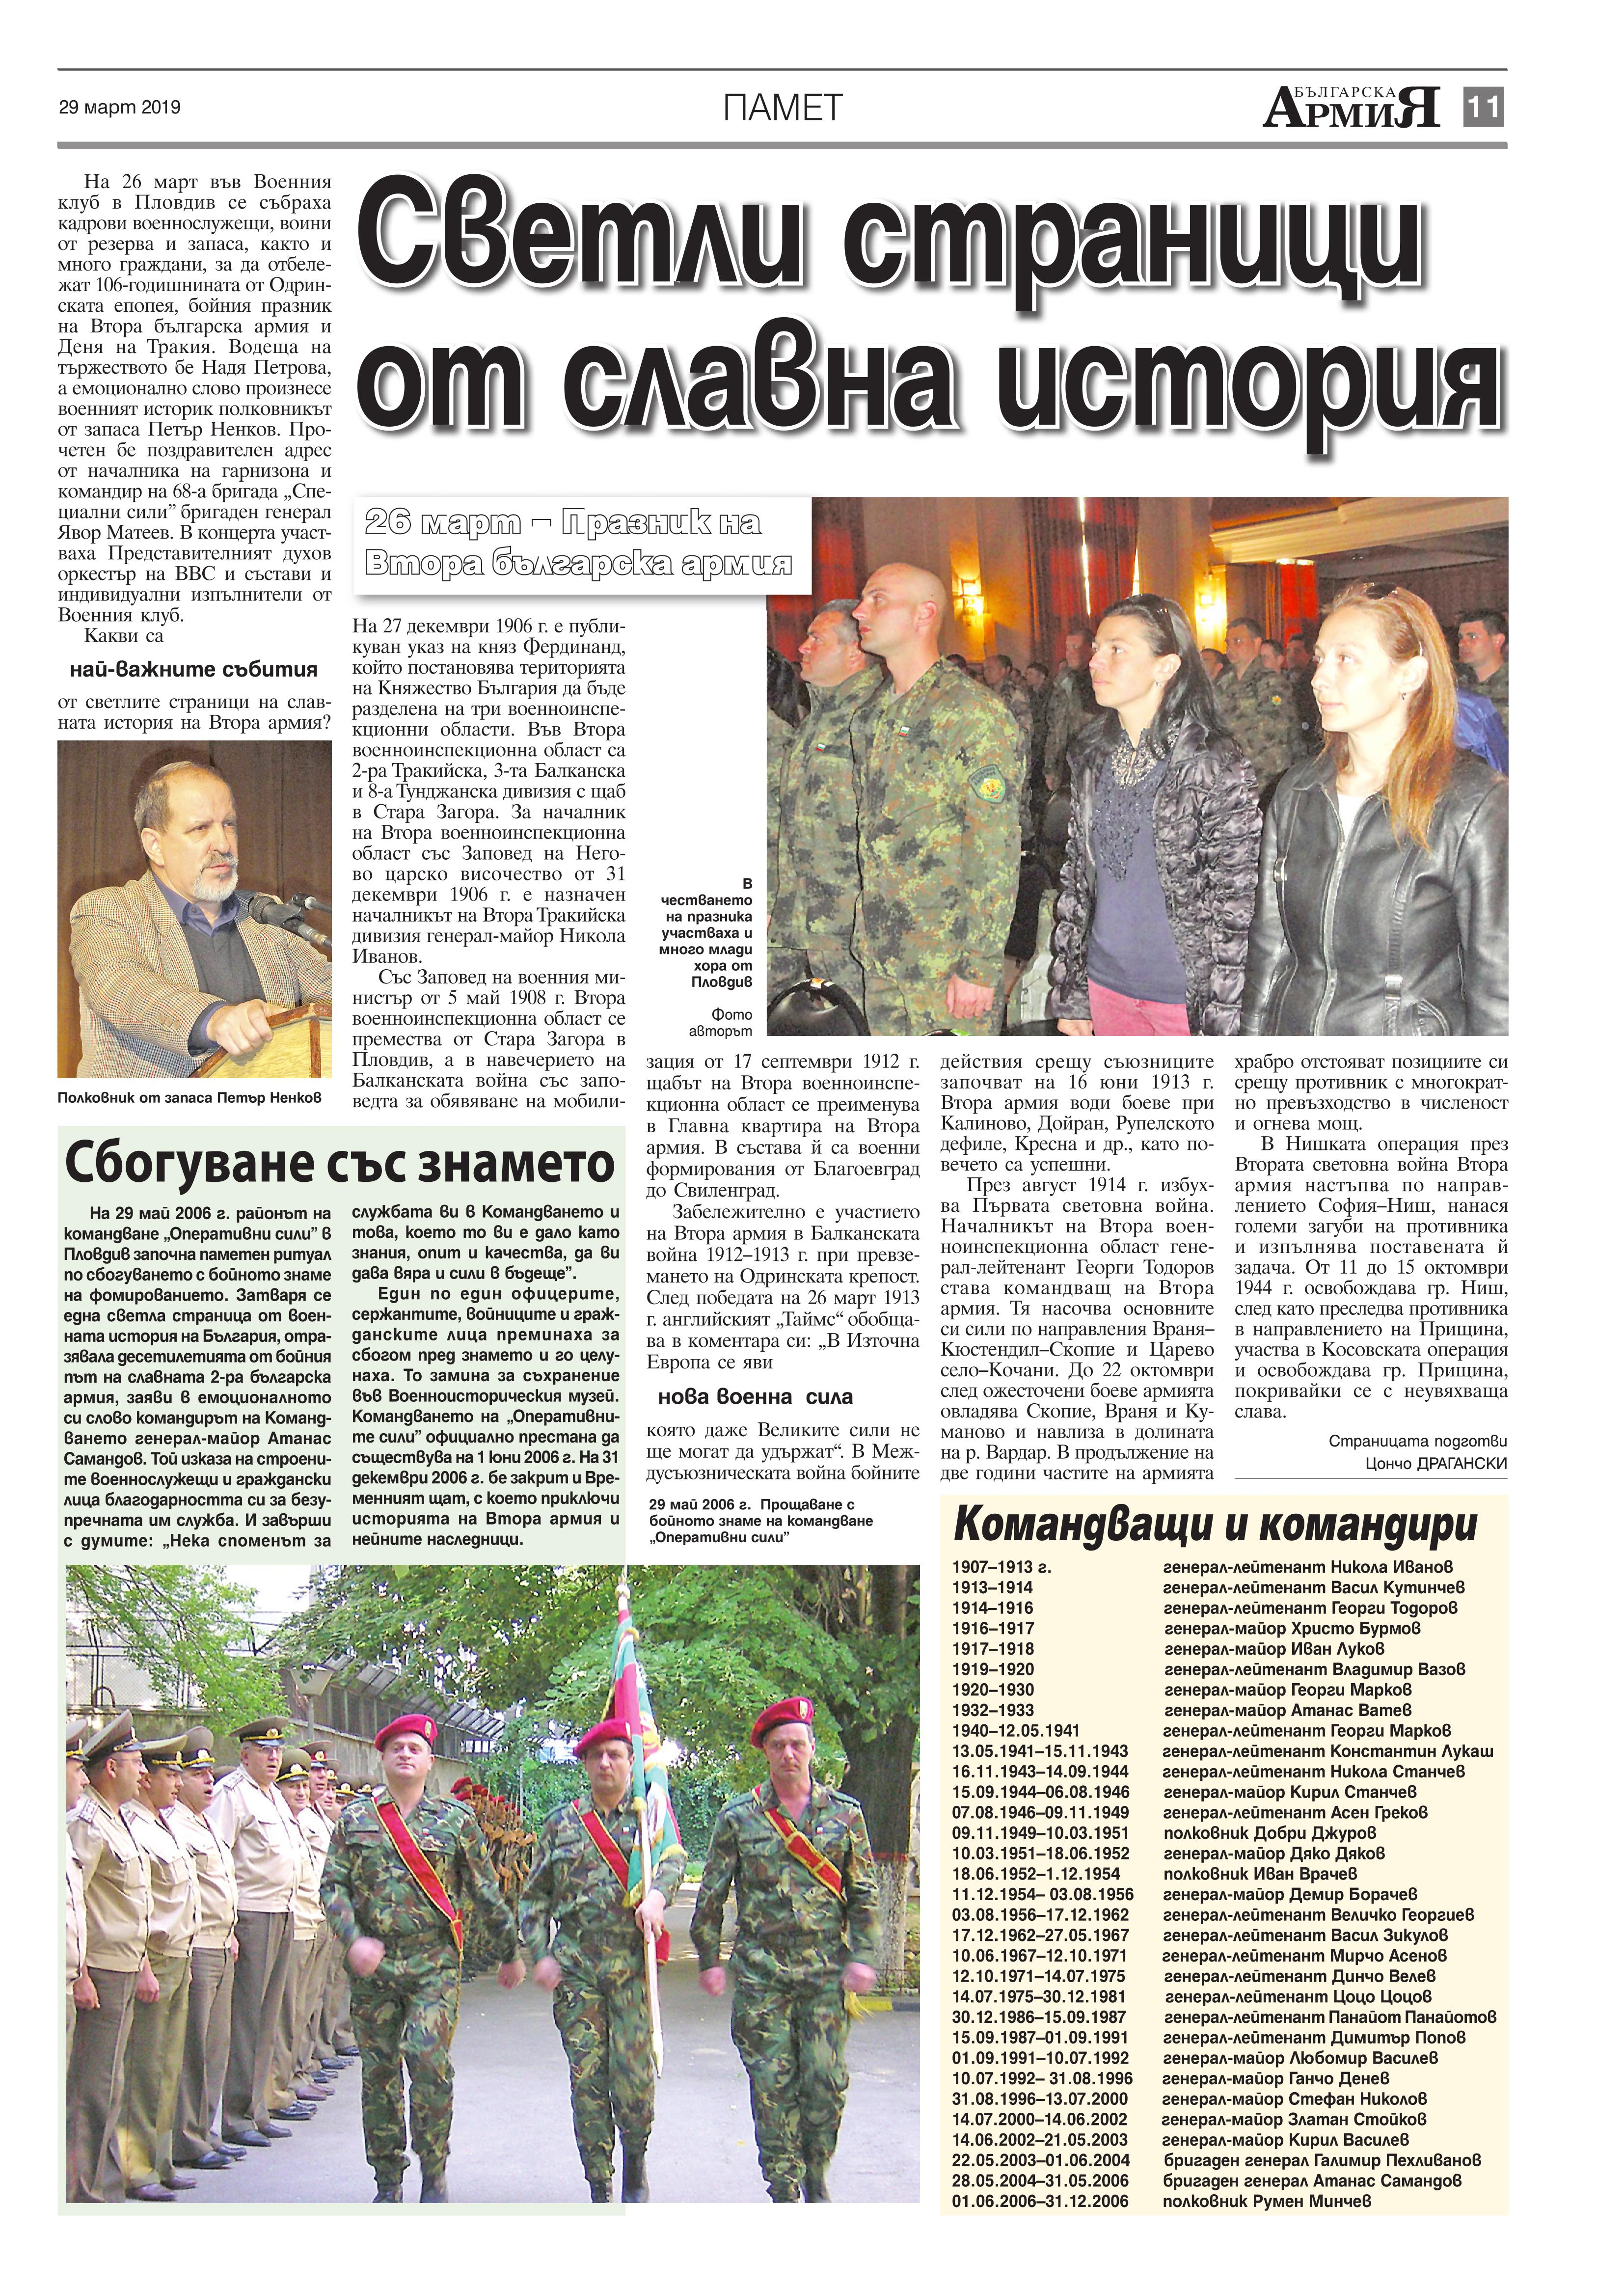 https://www.armymedia.bg/wp-content/uploads/2015/06/11.page1_-89.jpg